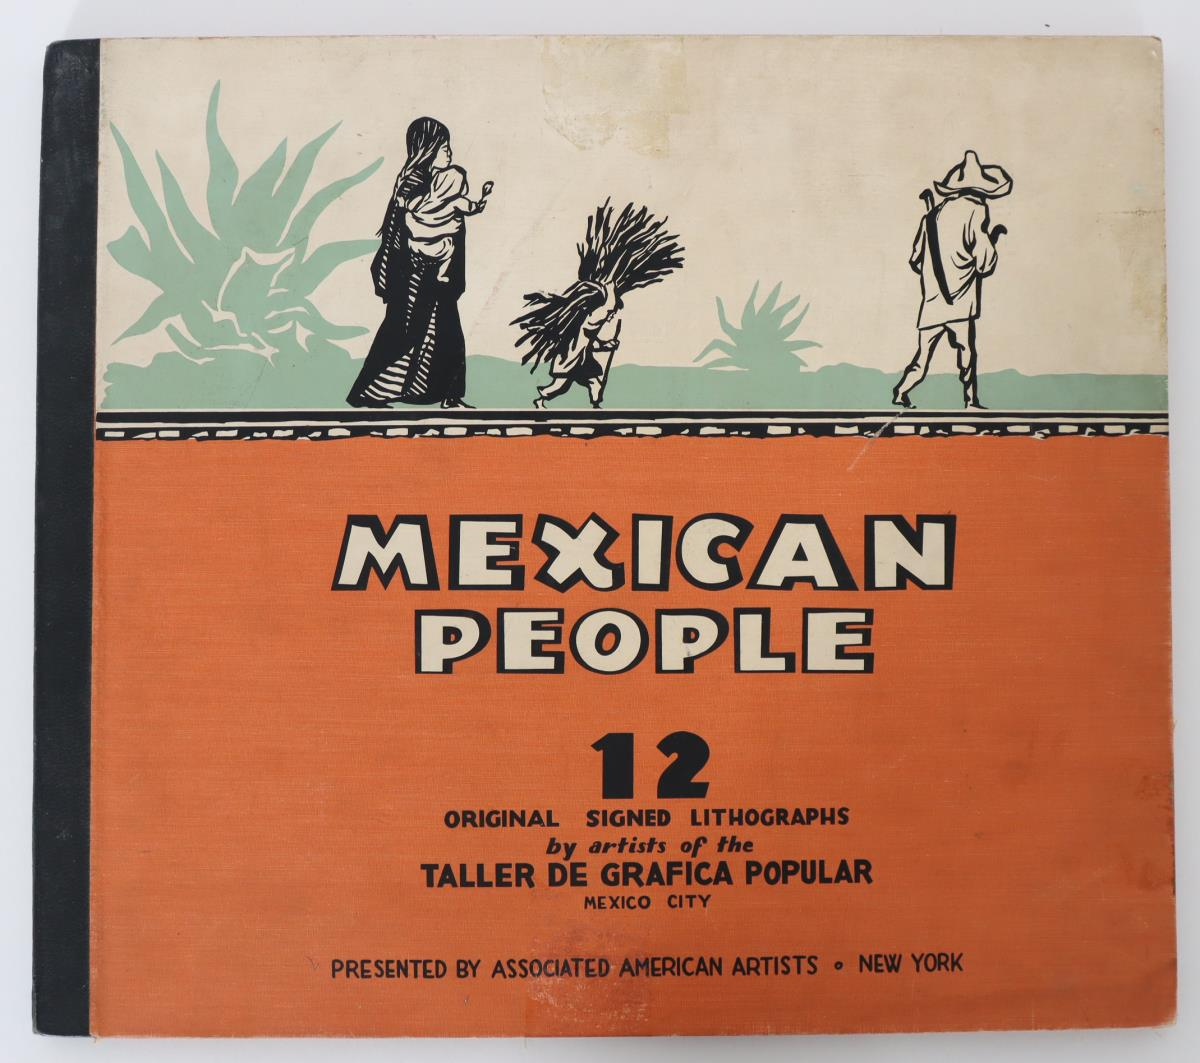 Various Artists, Mexican People Portfolio - Image 12 of 12